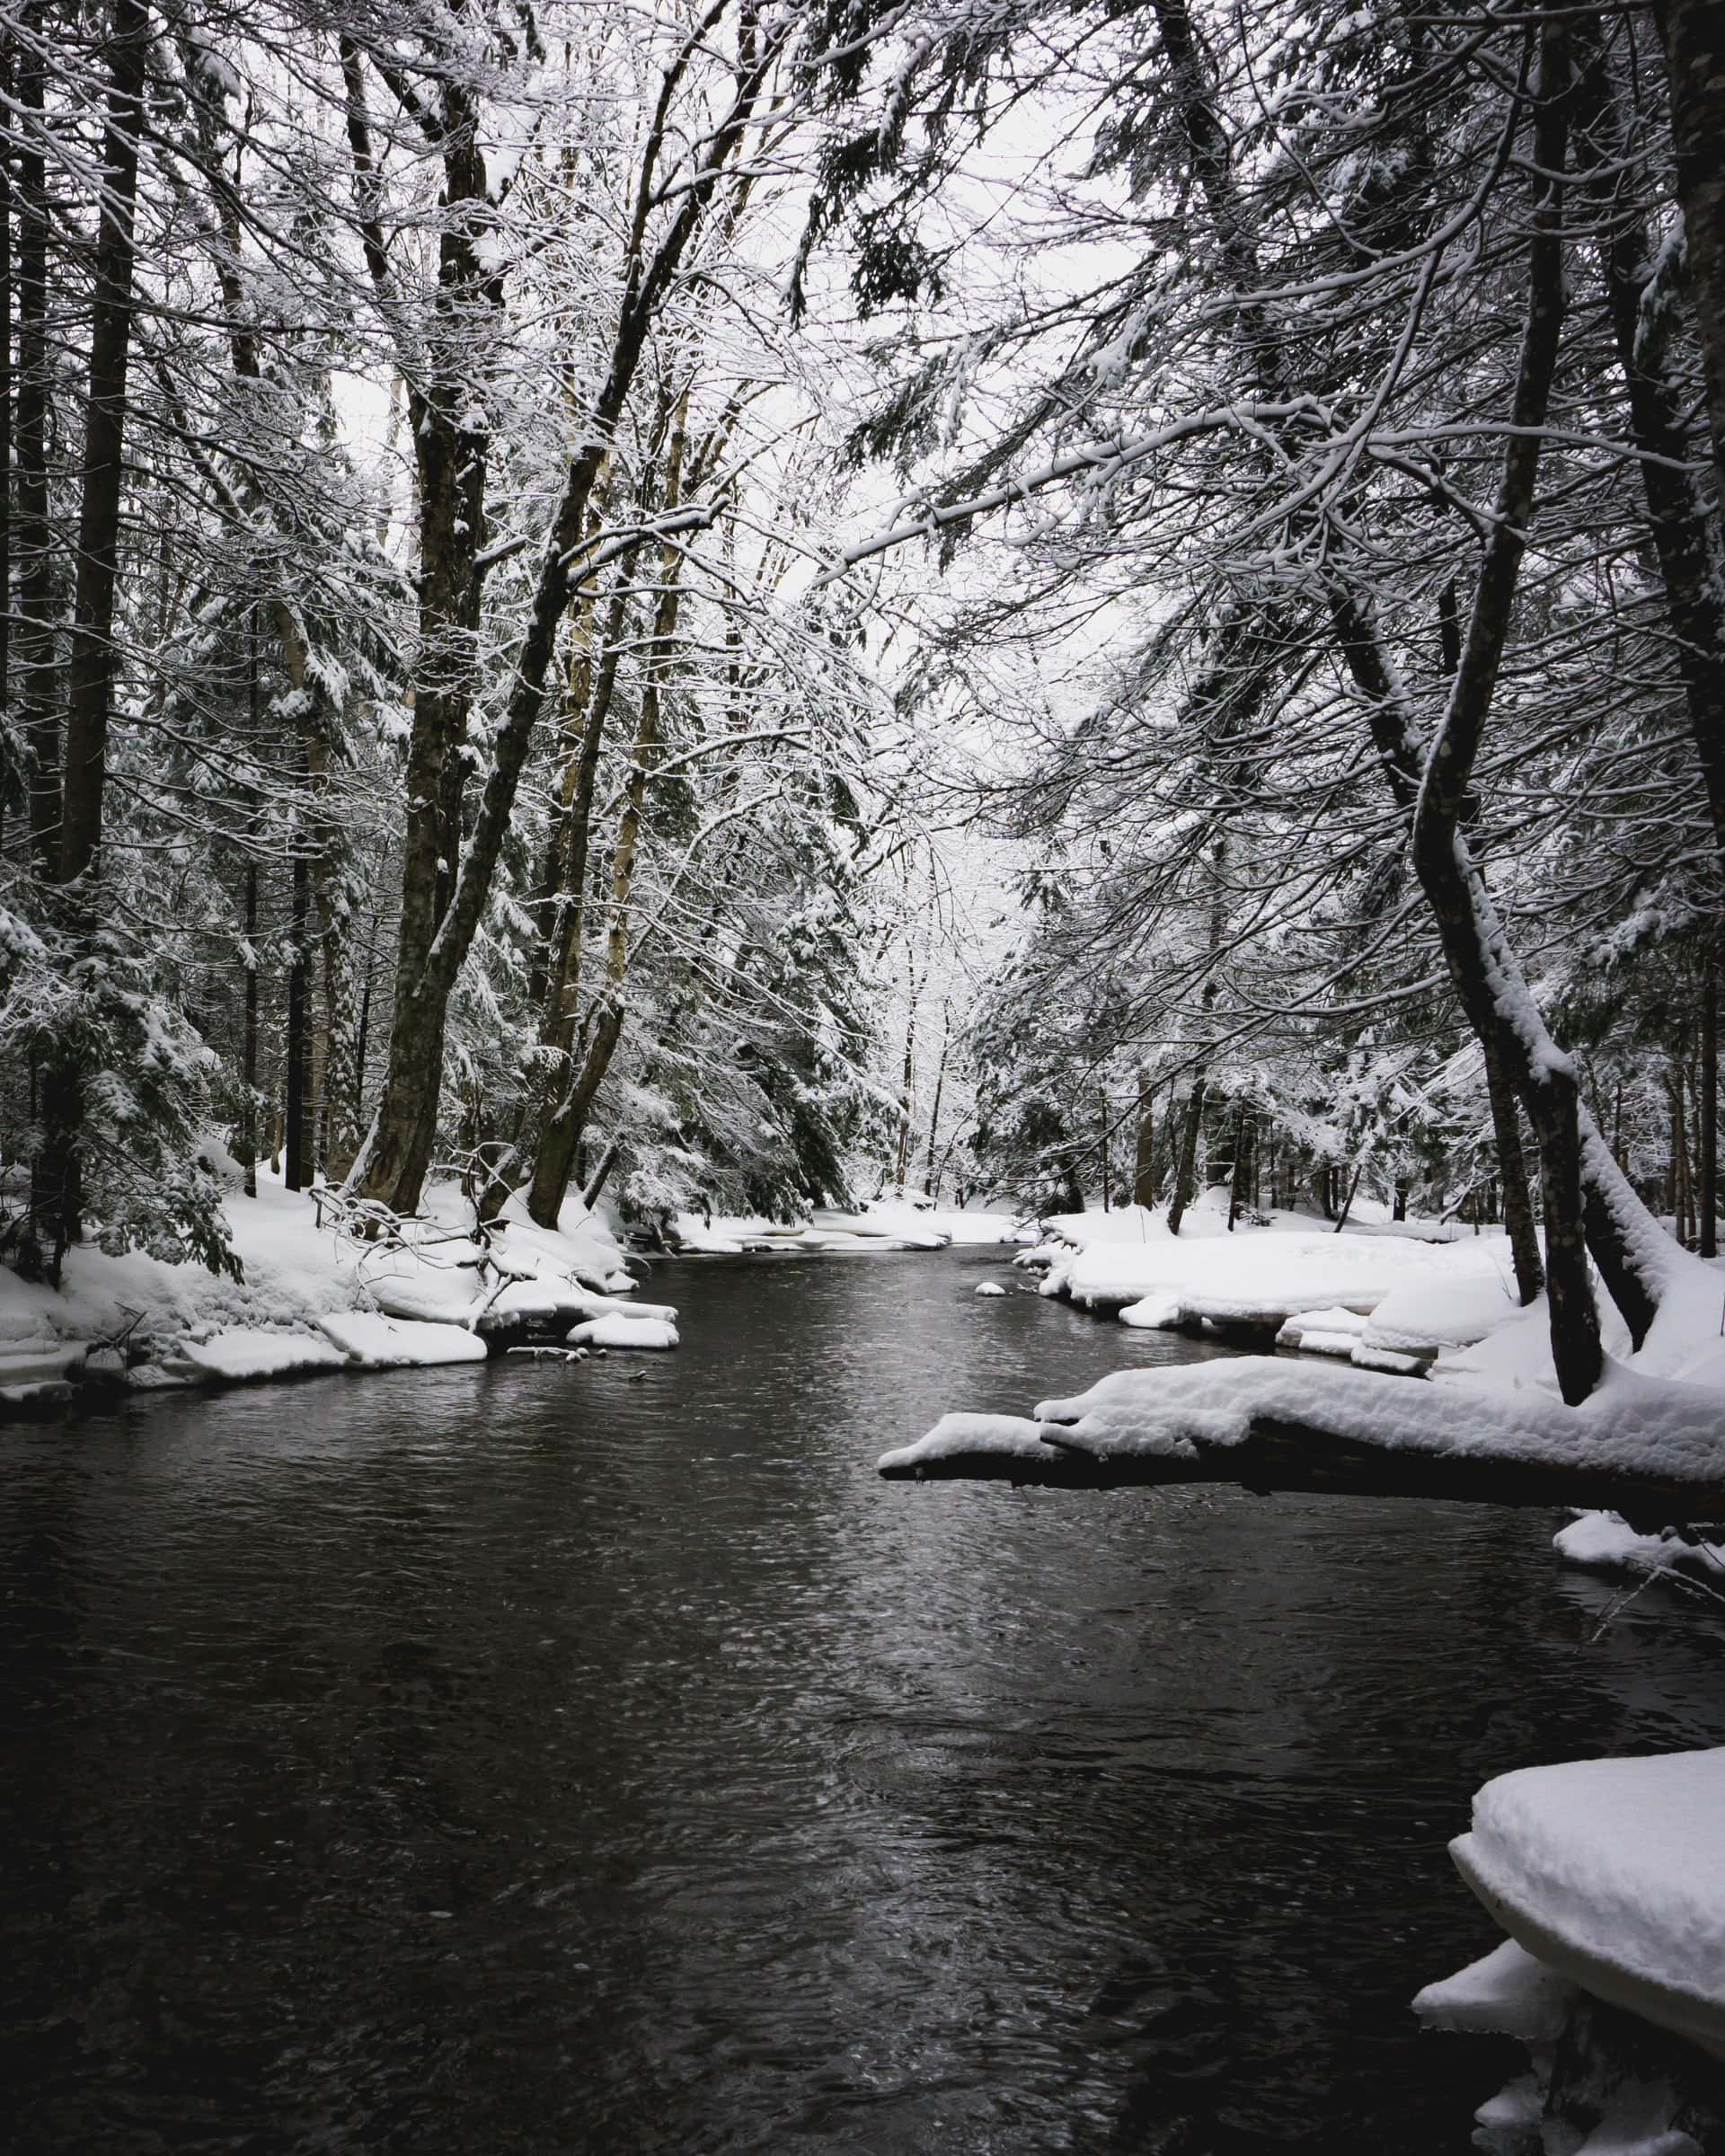 snowy forest river